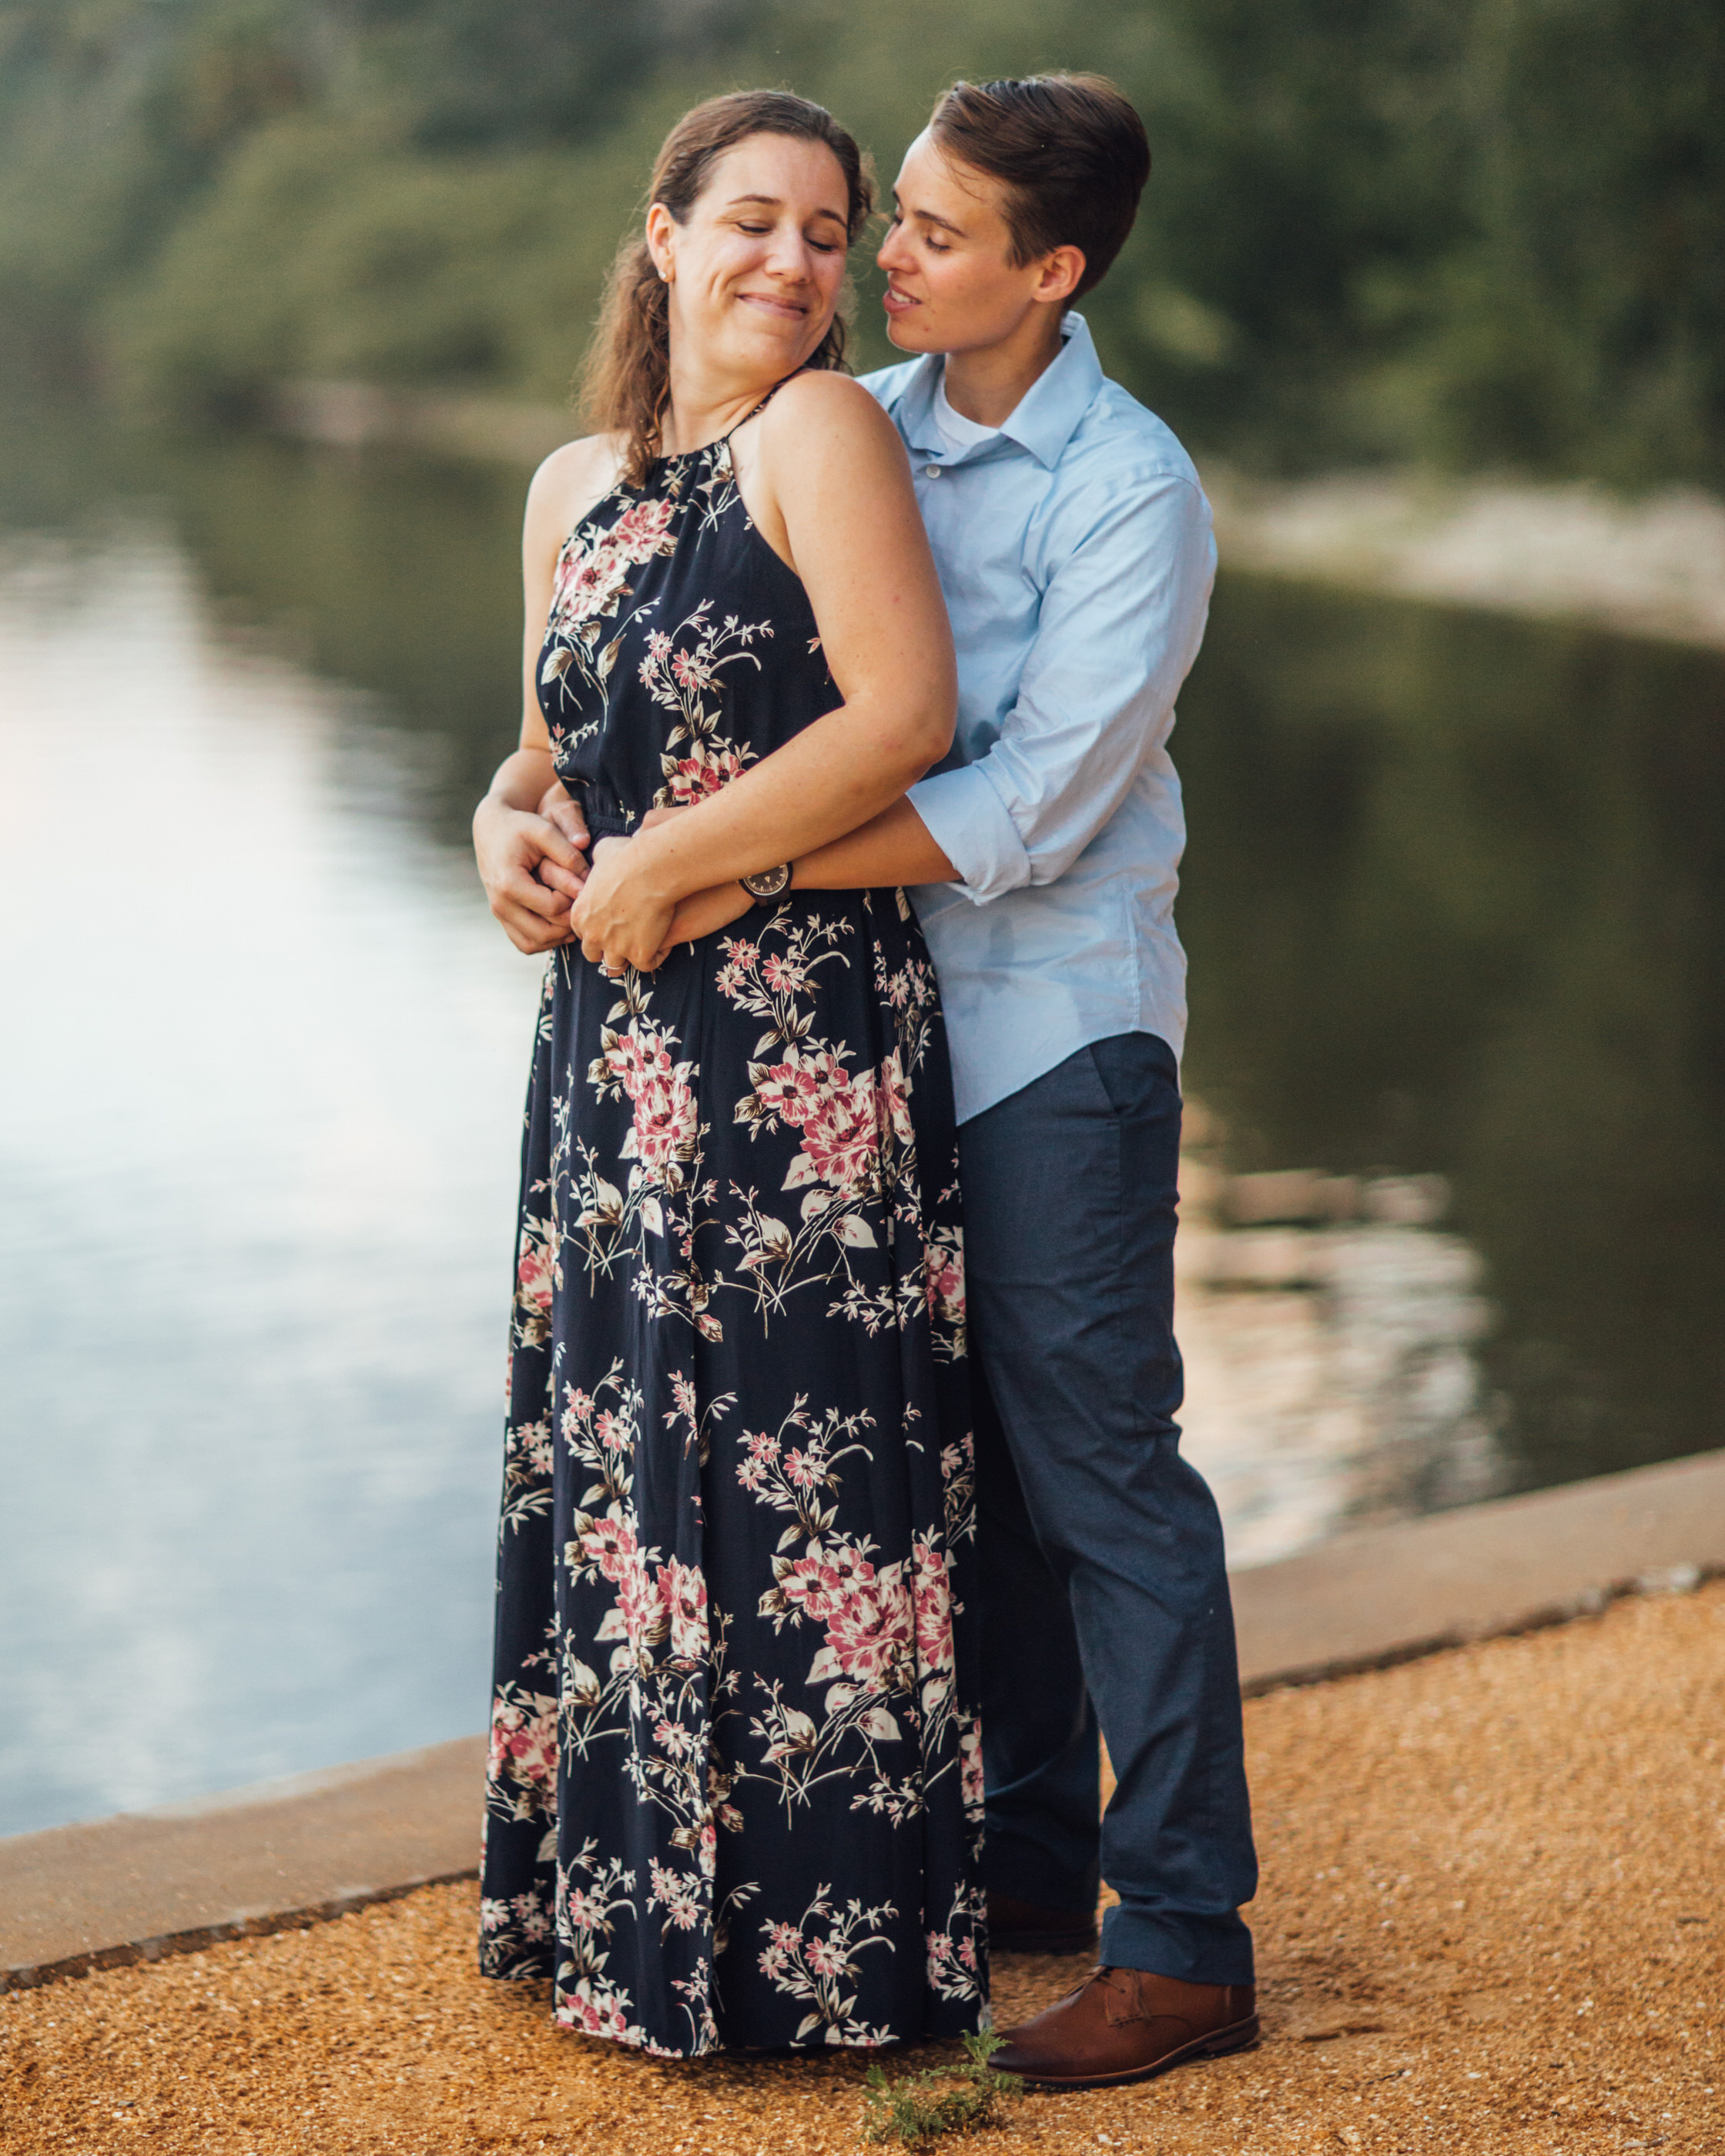 Orlando Natural Forest State Park Engagement Photos- Romantic LGBT Engaged Couples photos129.jpg